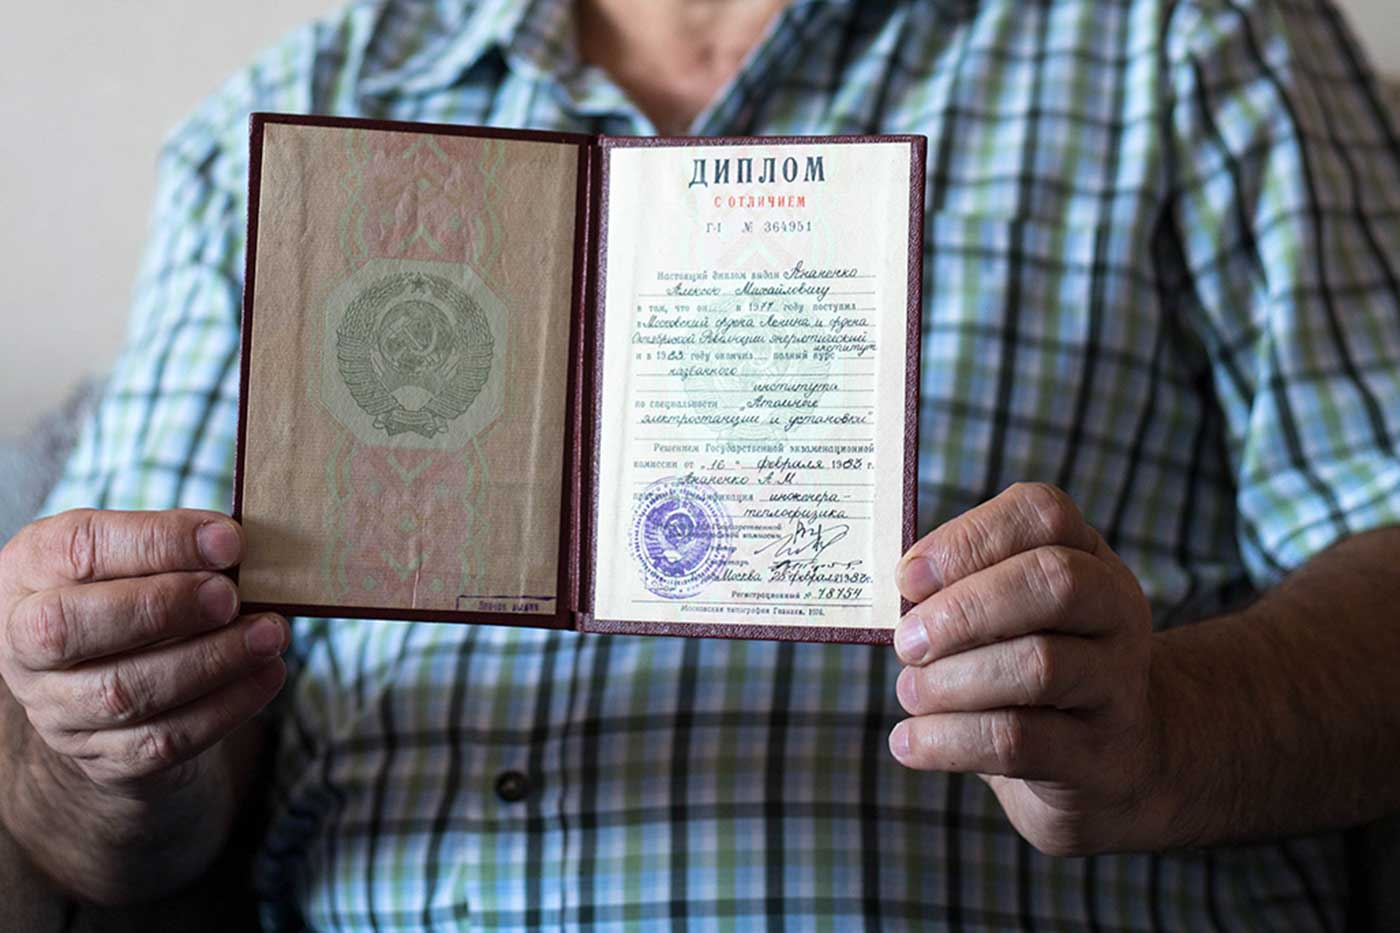 Alexei Ananenko shows off his diploma from the Moscow Power Engineering Institute. The National Chernobyl Museum in Kyiv have previously asked if he'd consider donating it to their exhibition.